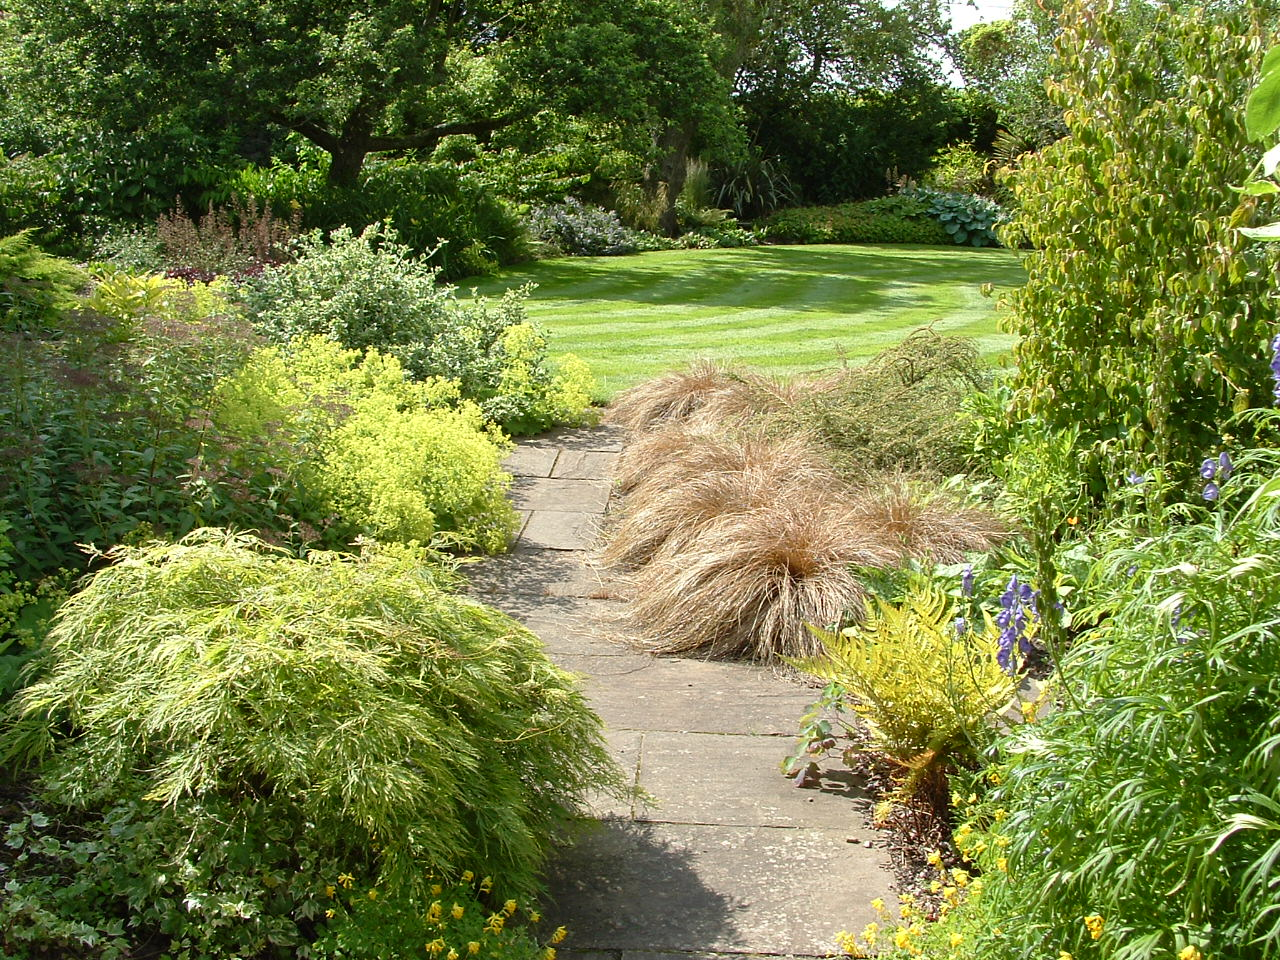 Tactile planting spills softly over a natural stone path to a sweeping lawn